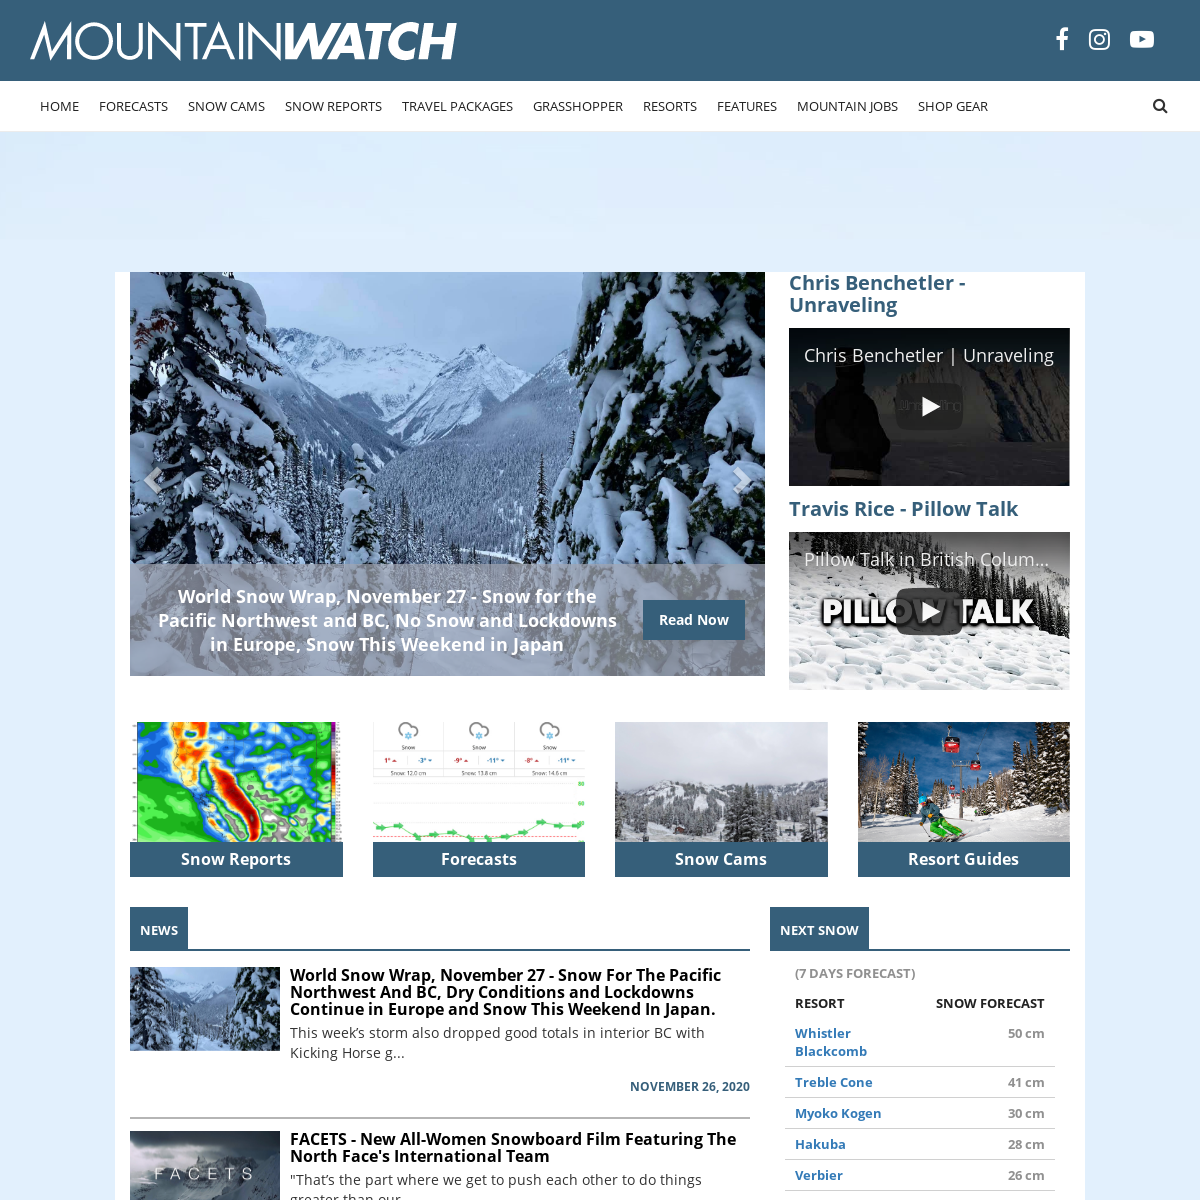 Mountainwatch - The Definitive Voice of the Mountains Worldwide